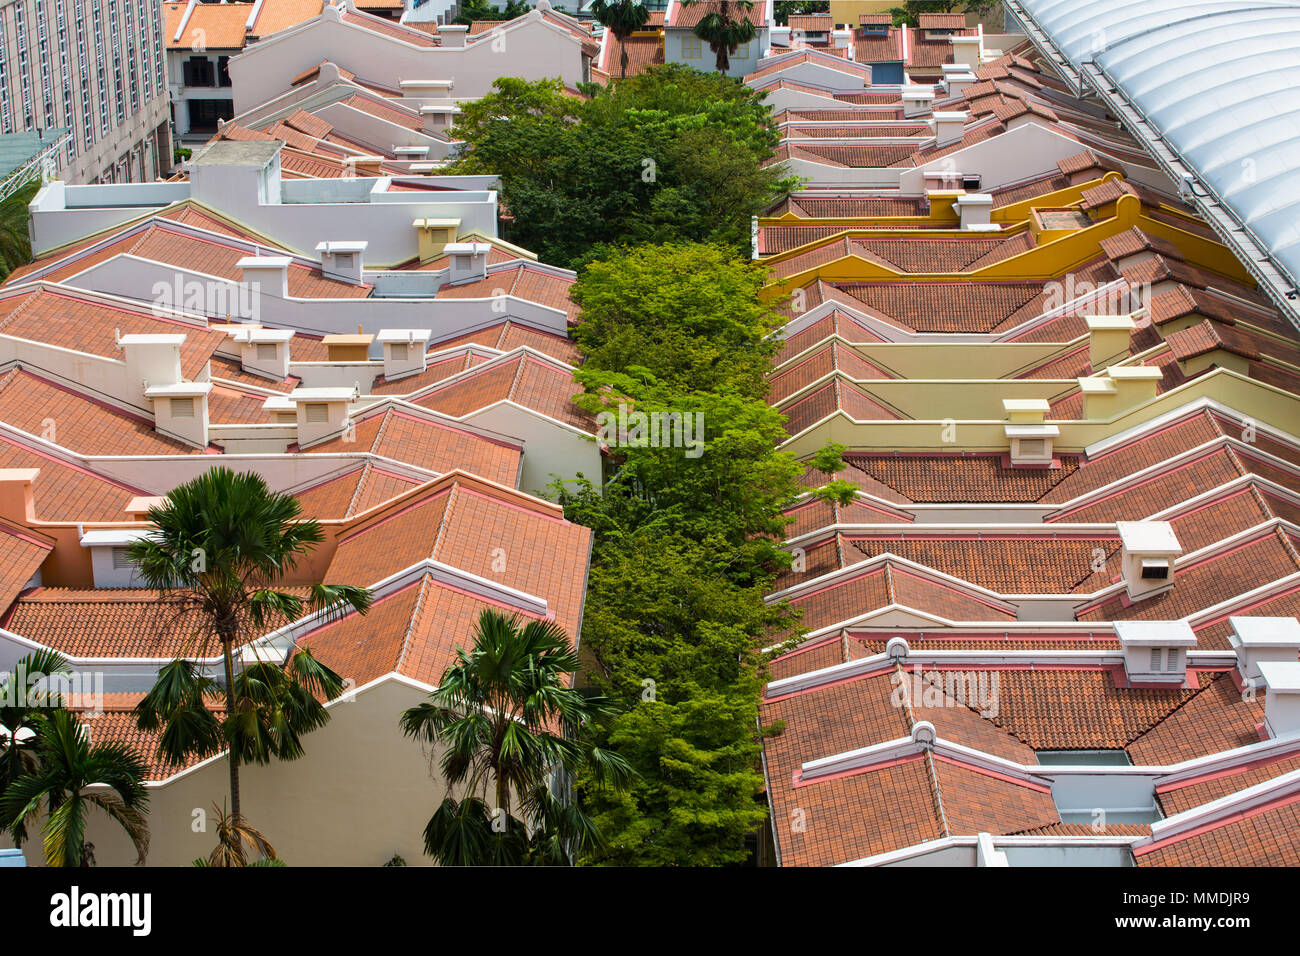 Aerial view to see how trees are planted in-between the shophouses - Stock Image